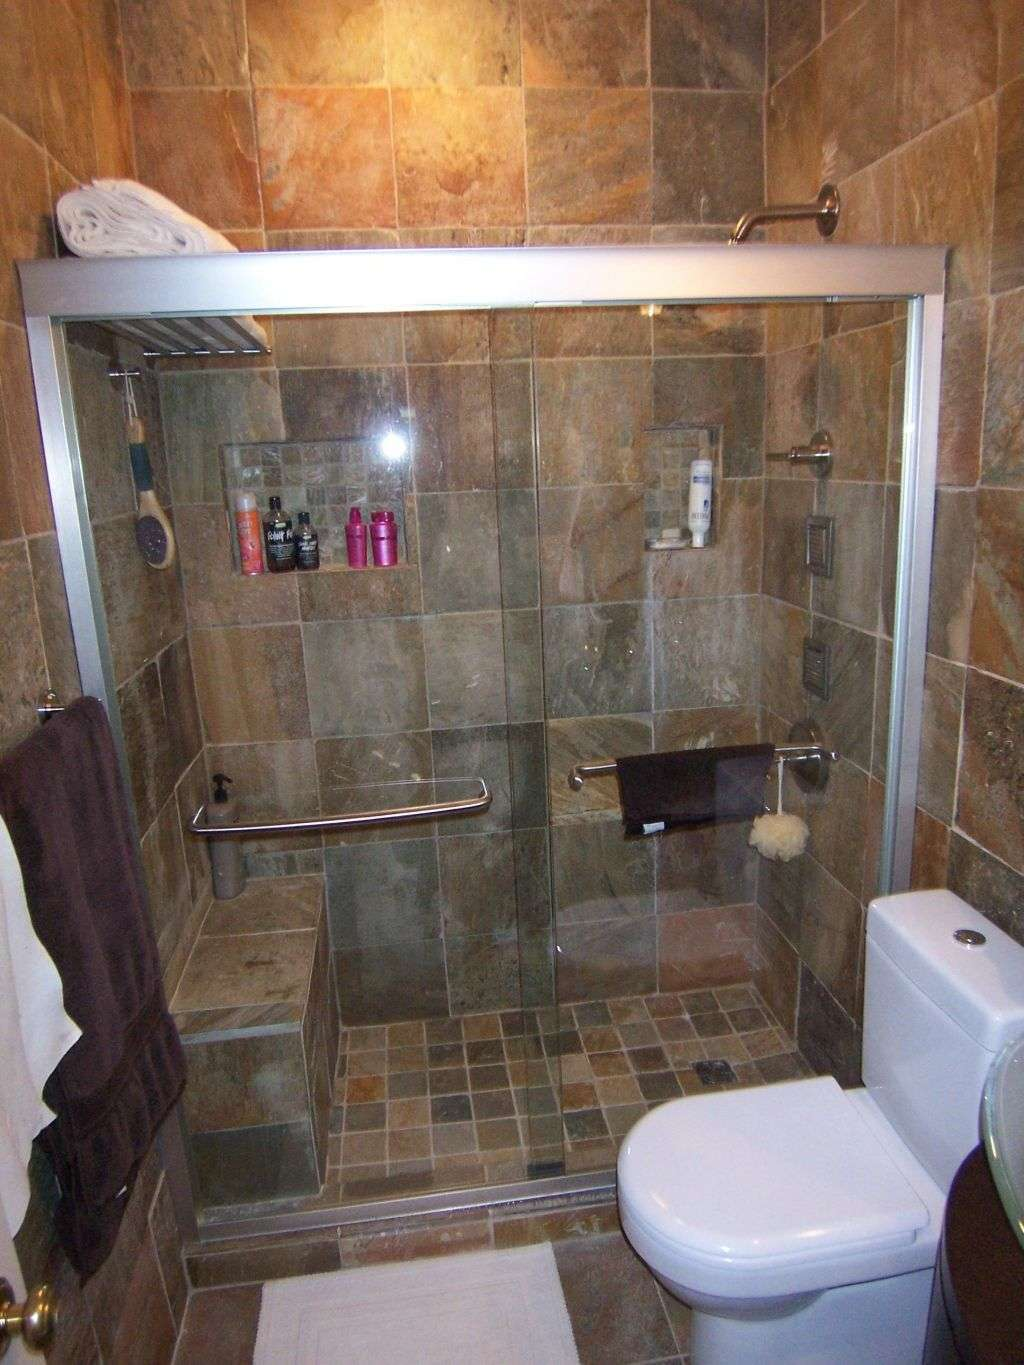 40 wonderful pictures and ideas of 1920s bathroom tile designs Bathroom tub tile design ideas